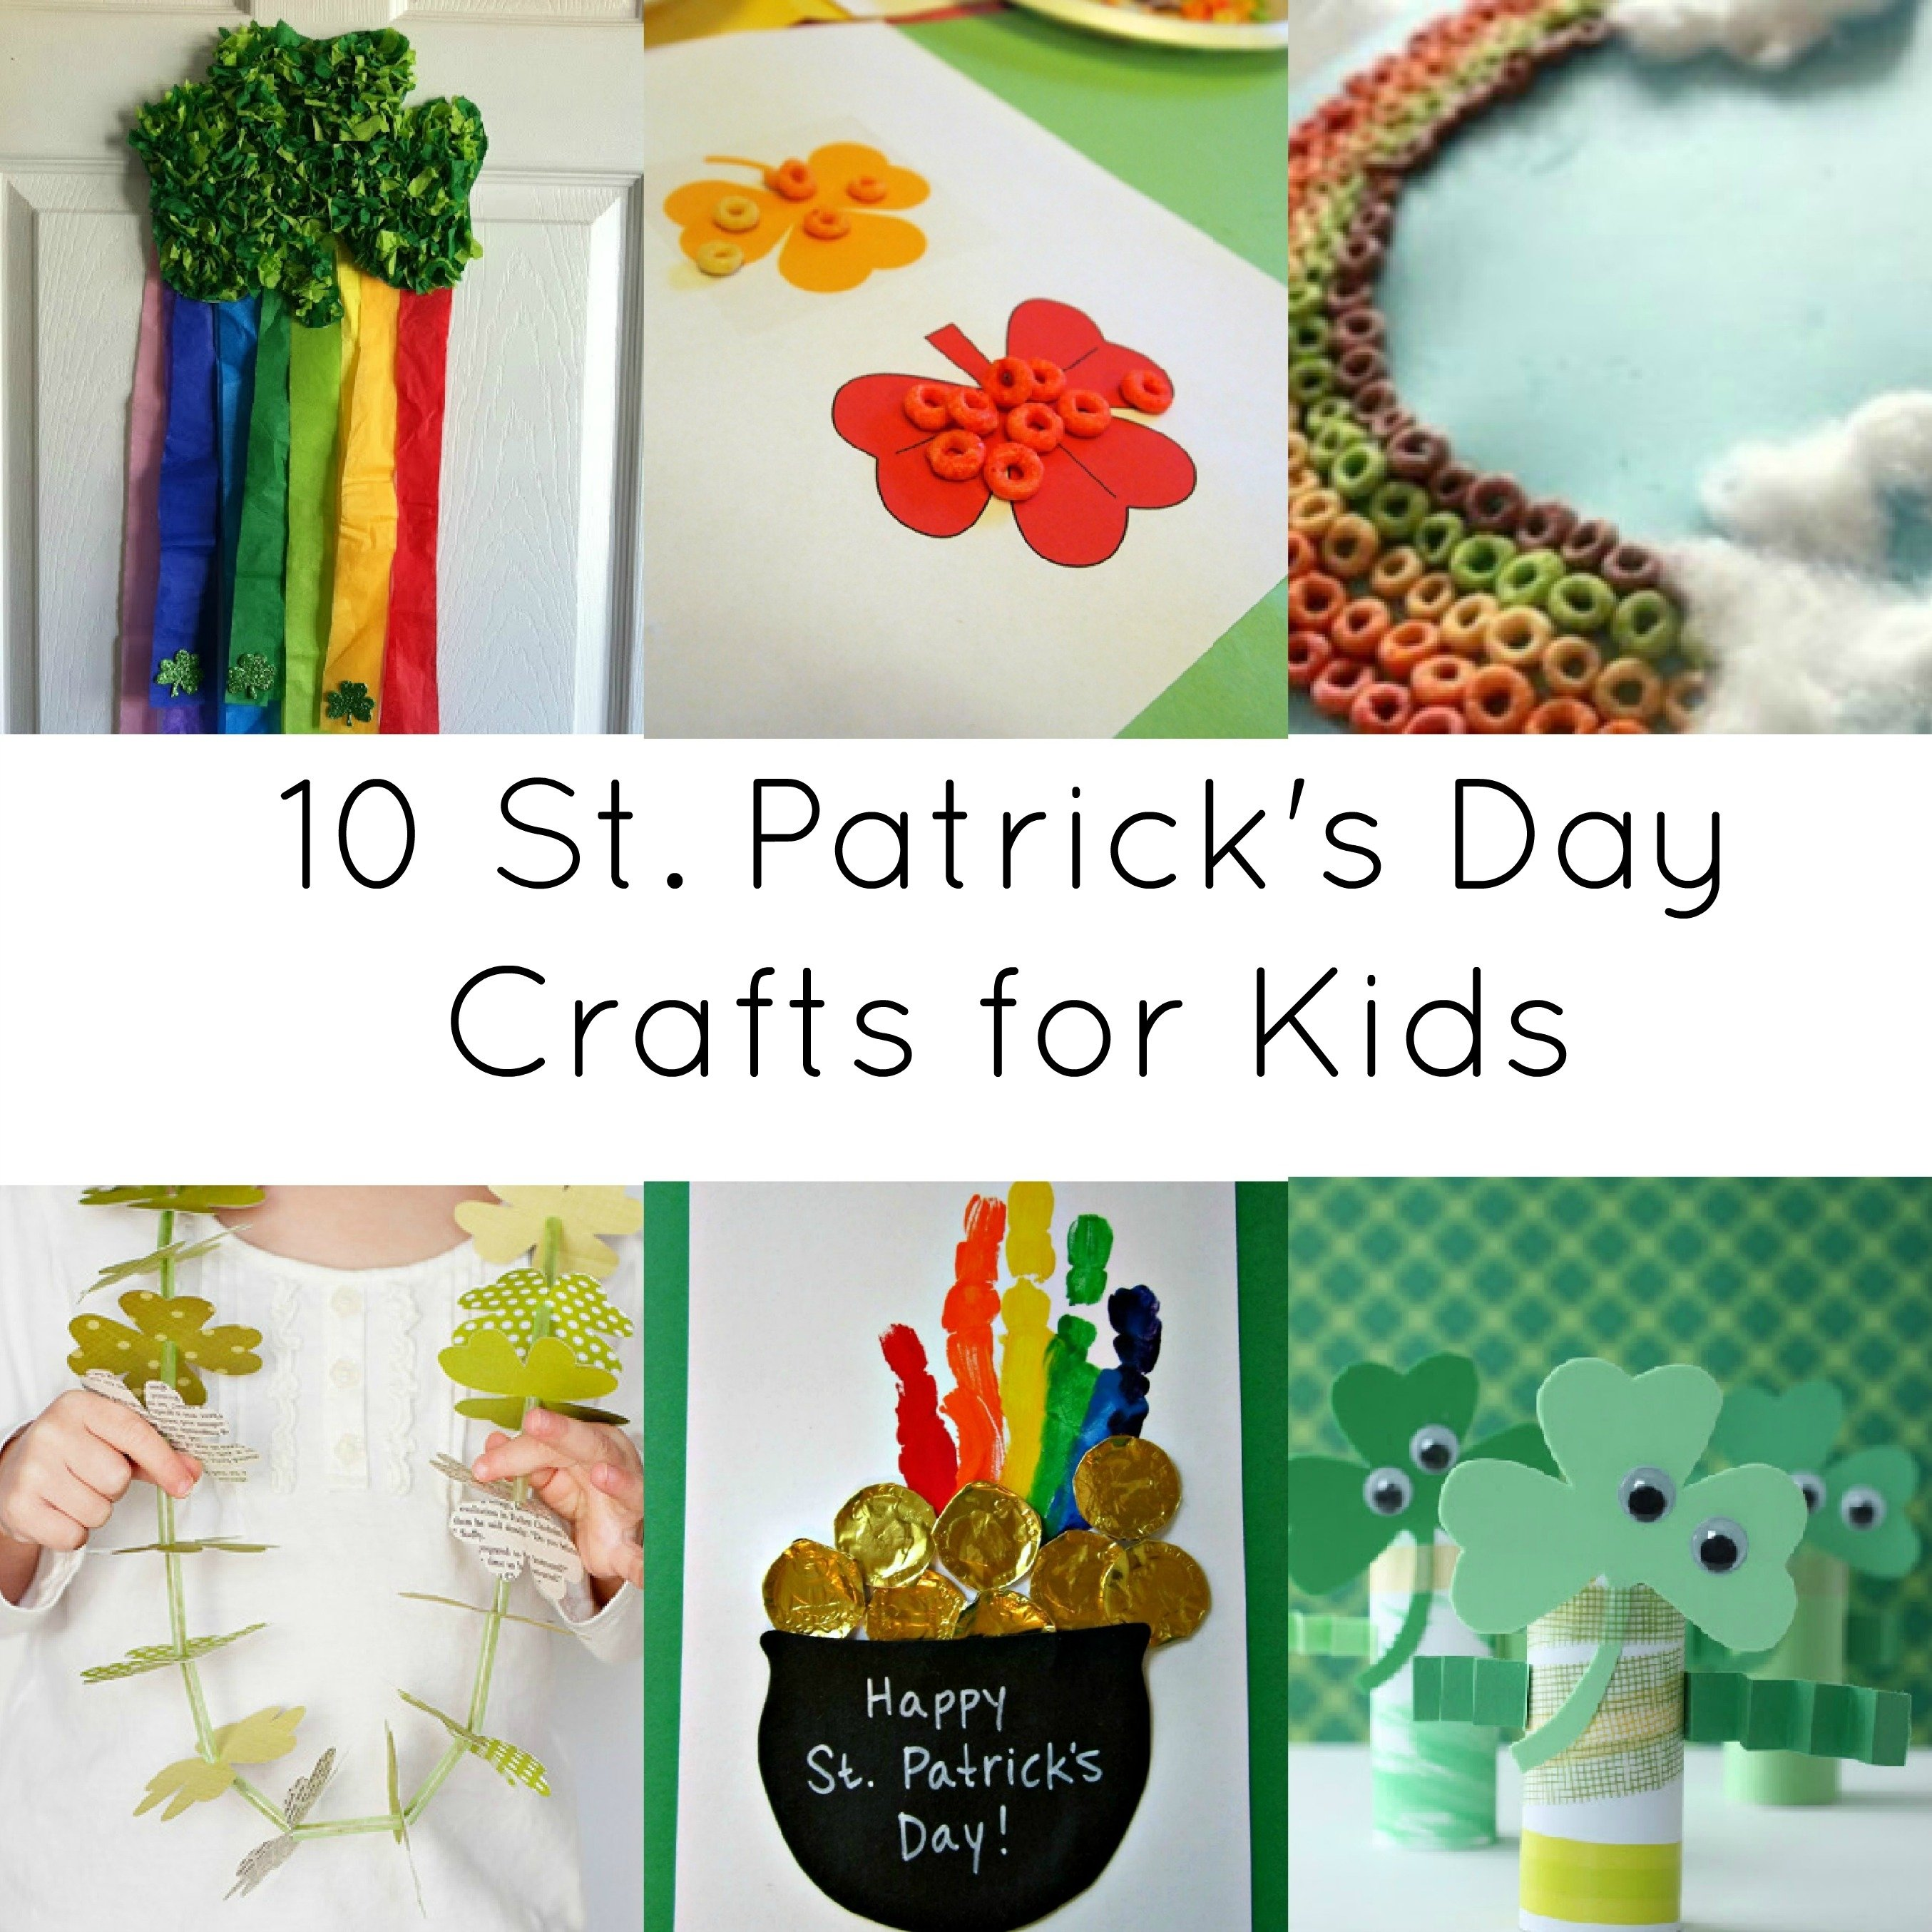 10 Lovable St Patricks Day Craft Ideas activities for kids 10 st patrick day crafts crystalandcomp 1 2020